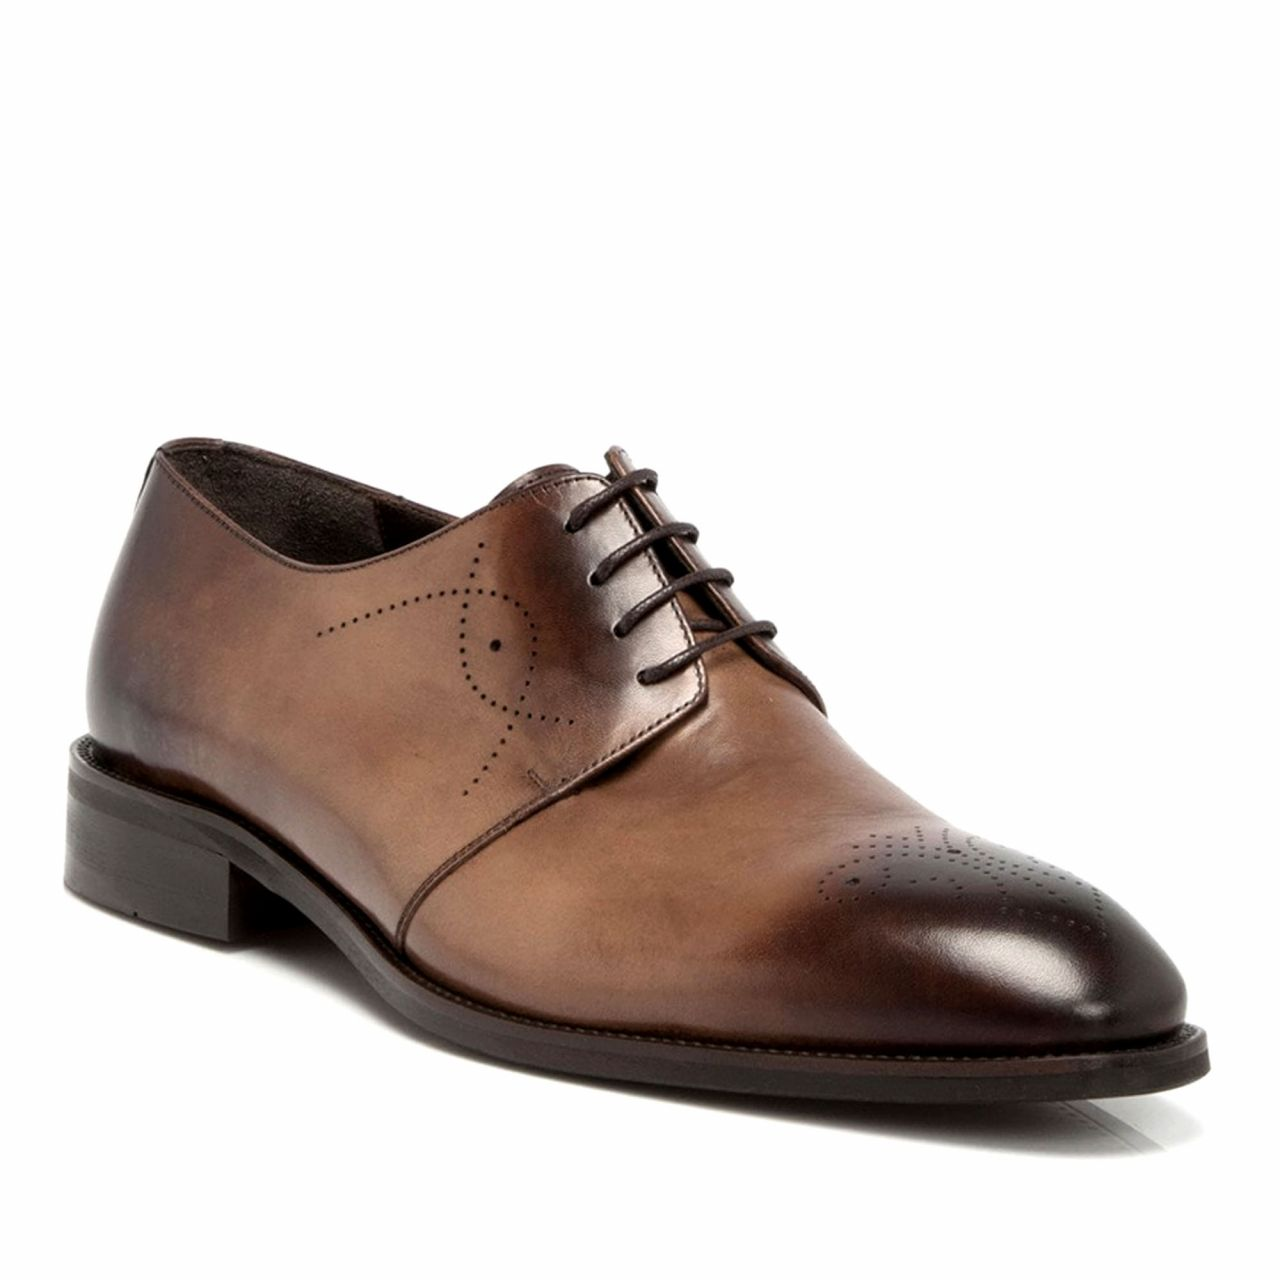 Stylish Brown Business Shoes